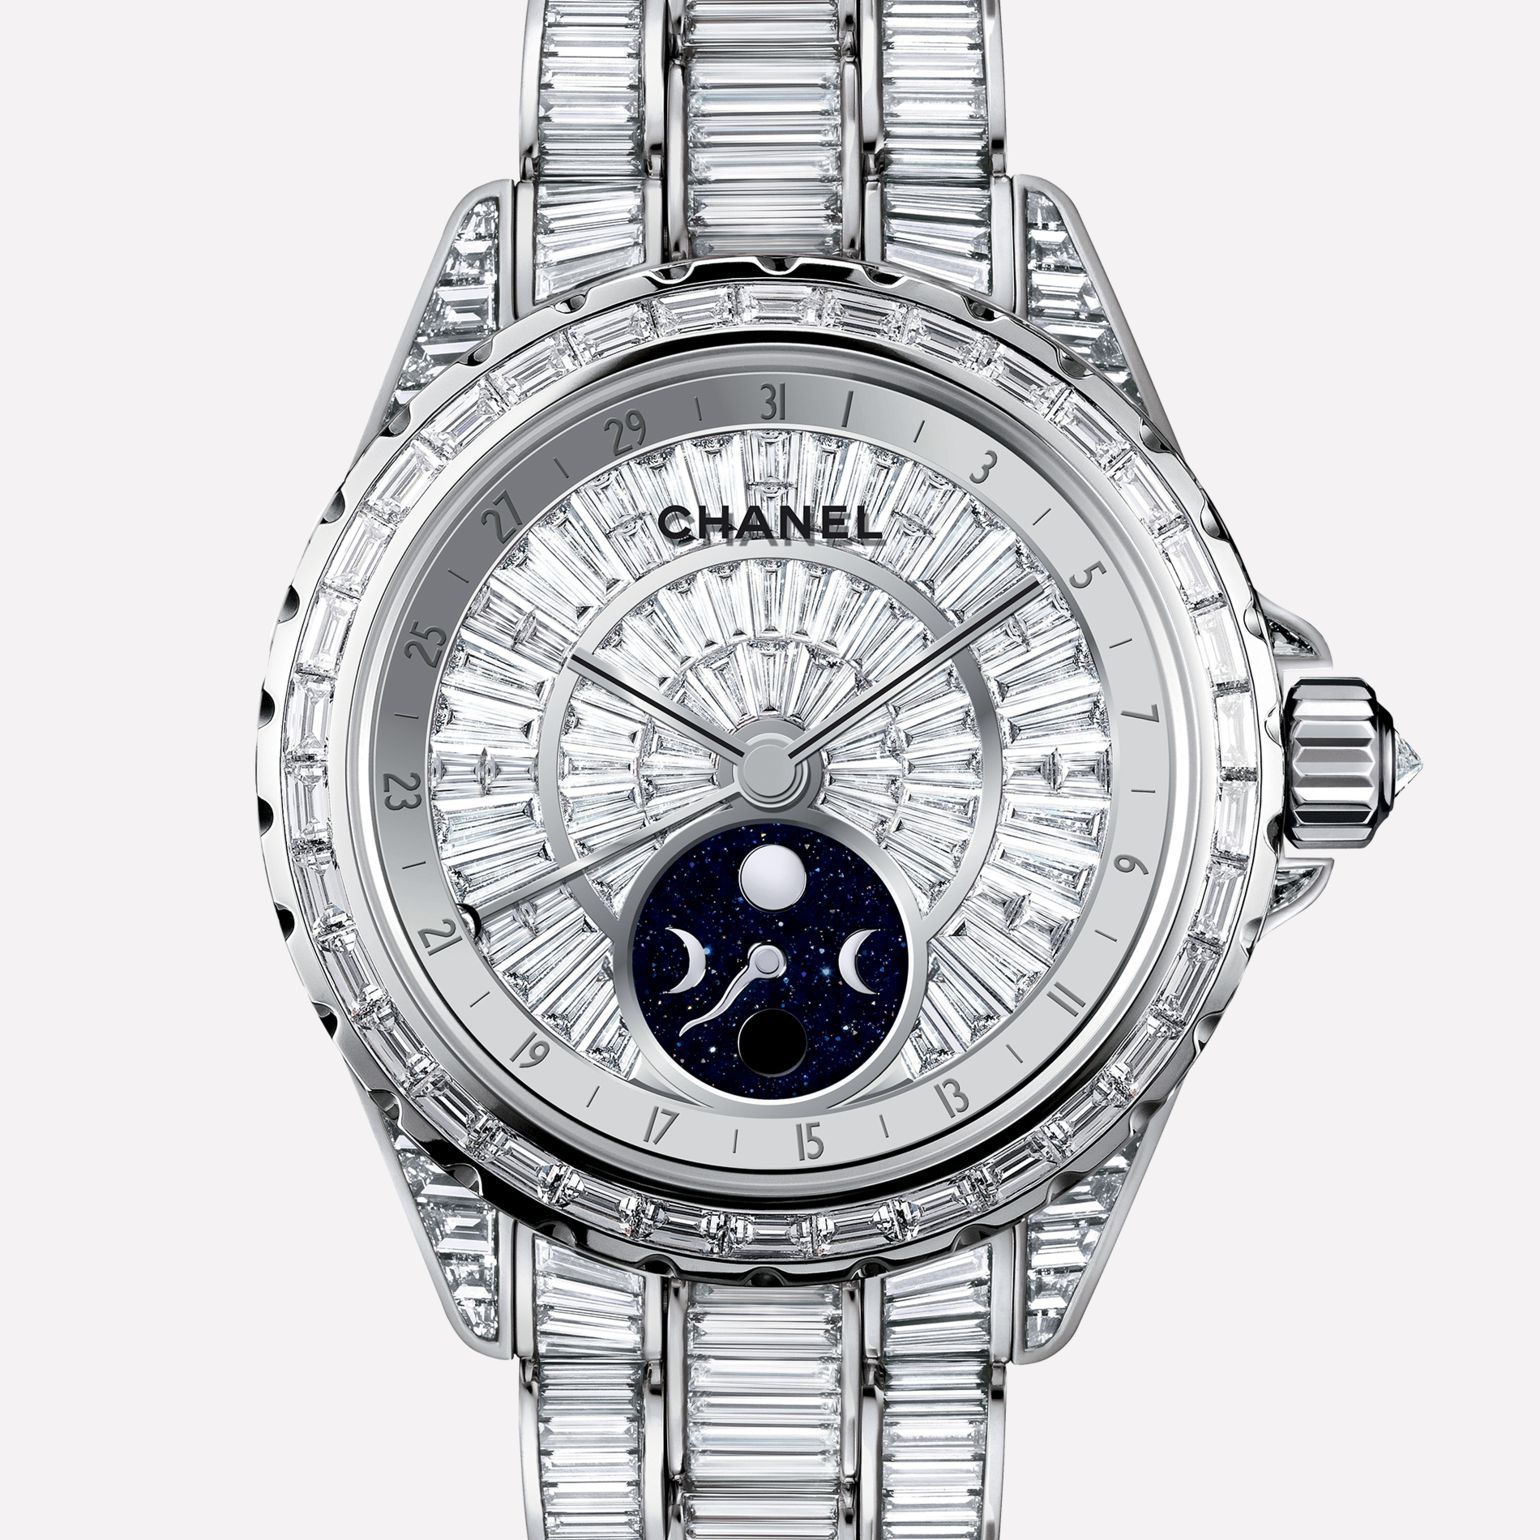 J12 High Jewellery Watch Moon phase, white gold, case, dial, bezel and bracelet set with baguette cut diamonds